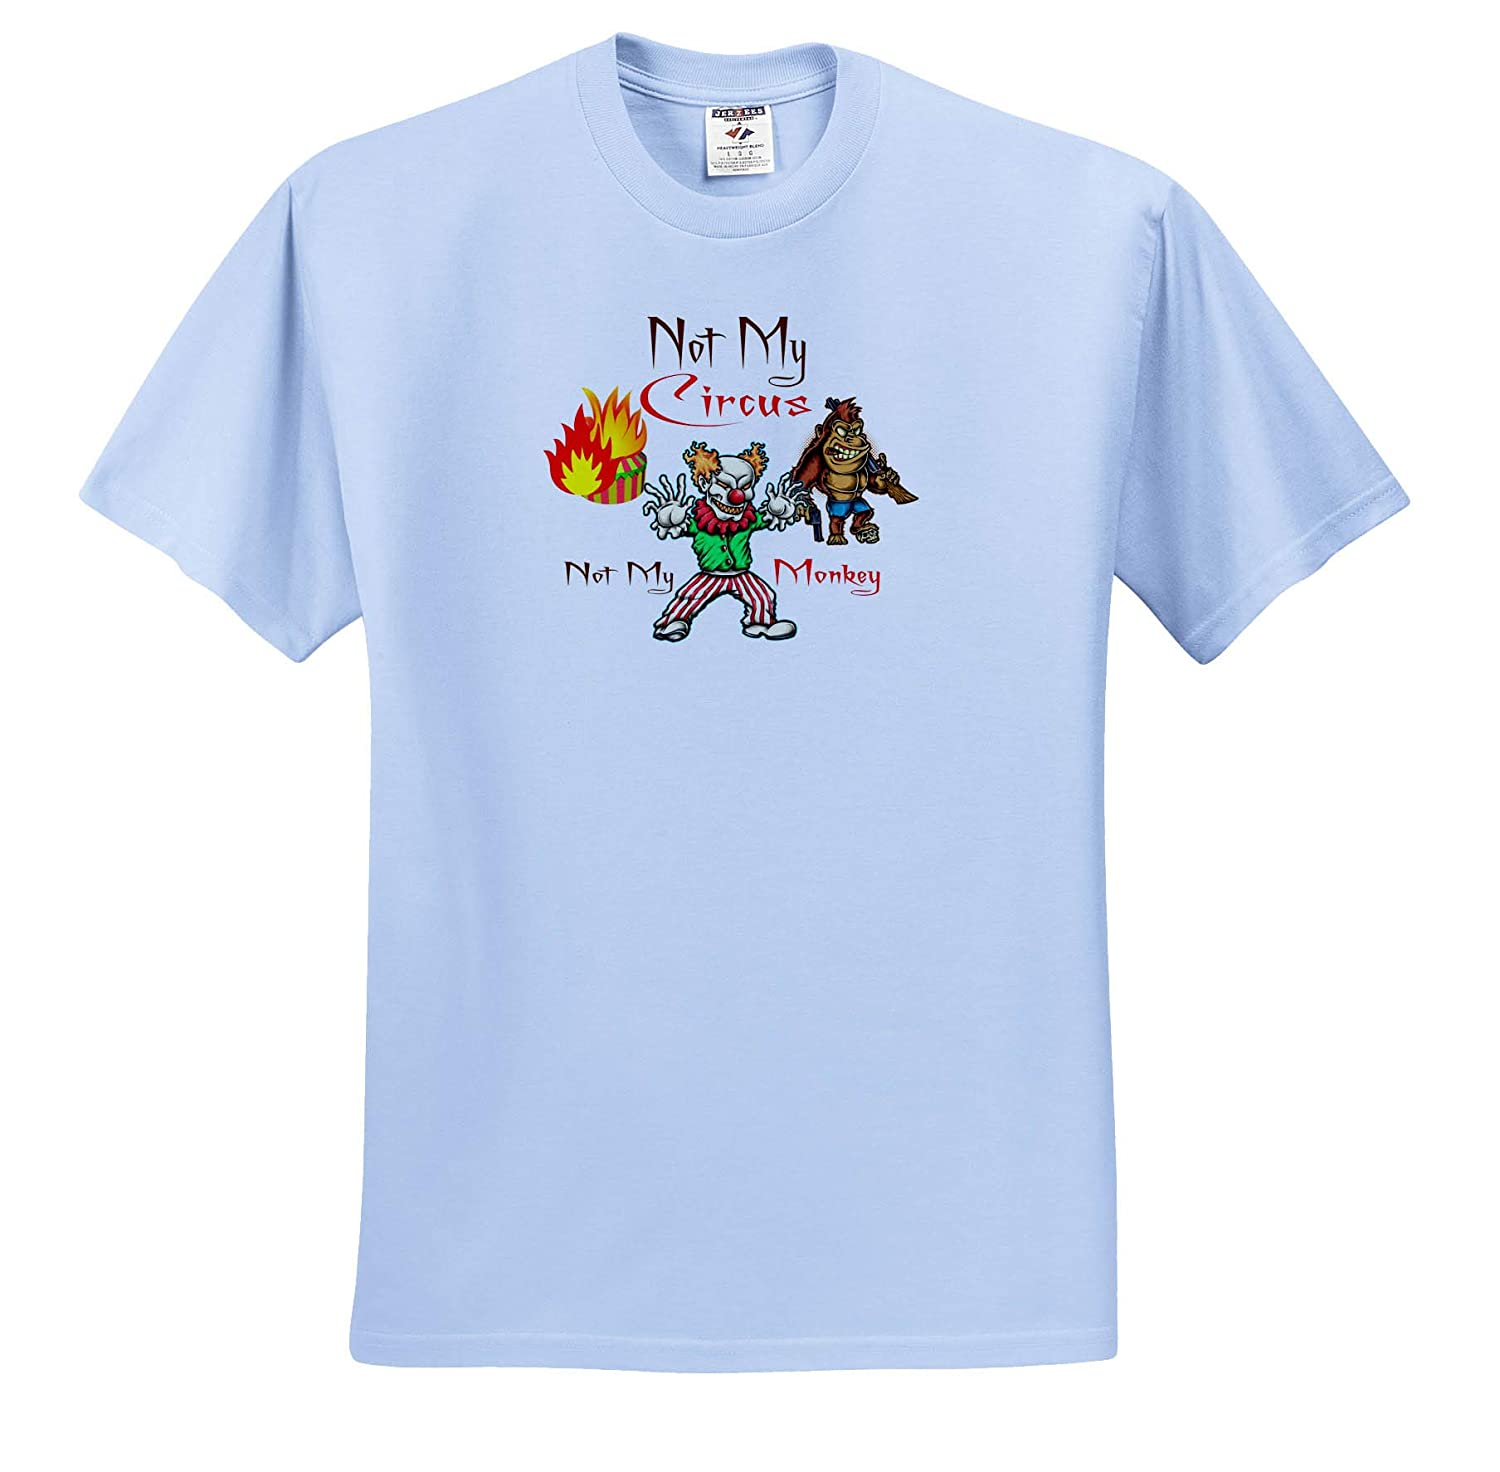 Funny Tent on fire 3dRose Alexis Design T-Shirts Not My Circus Evil Clown not My Monkey Killer Monkey